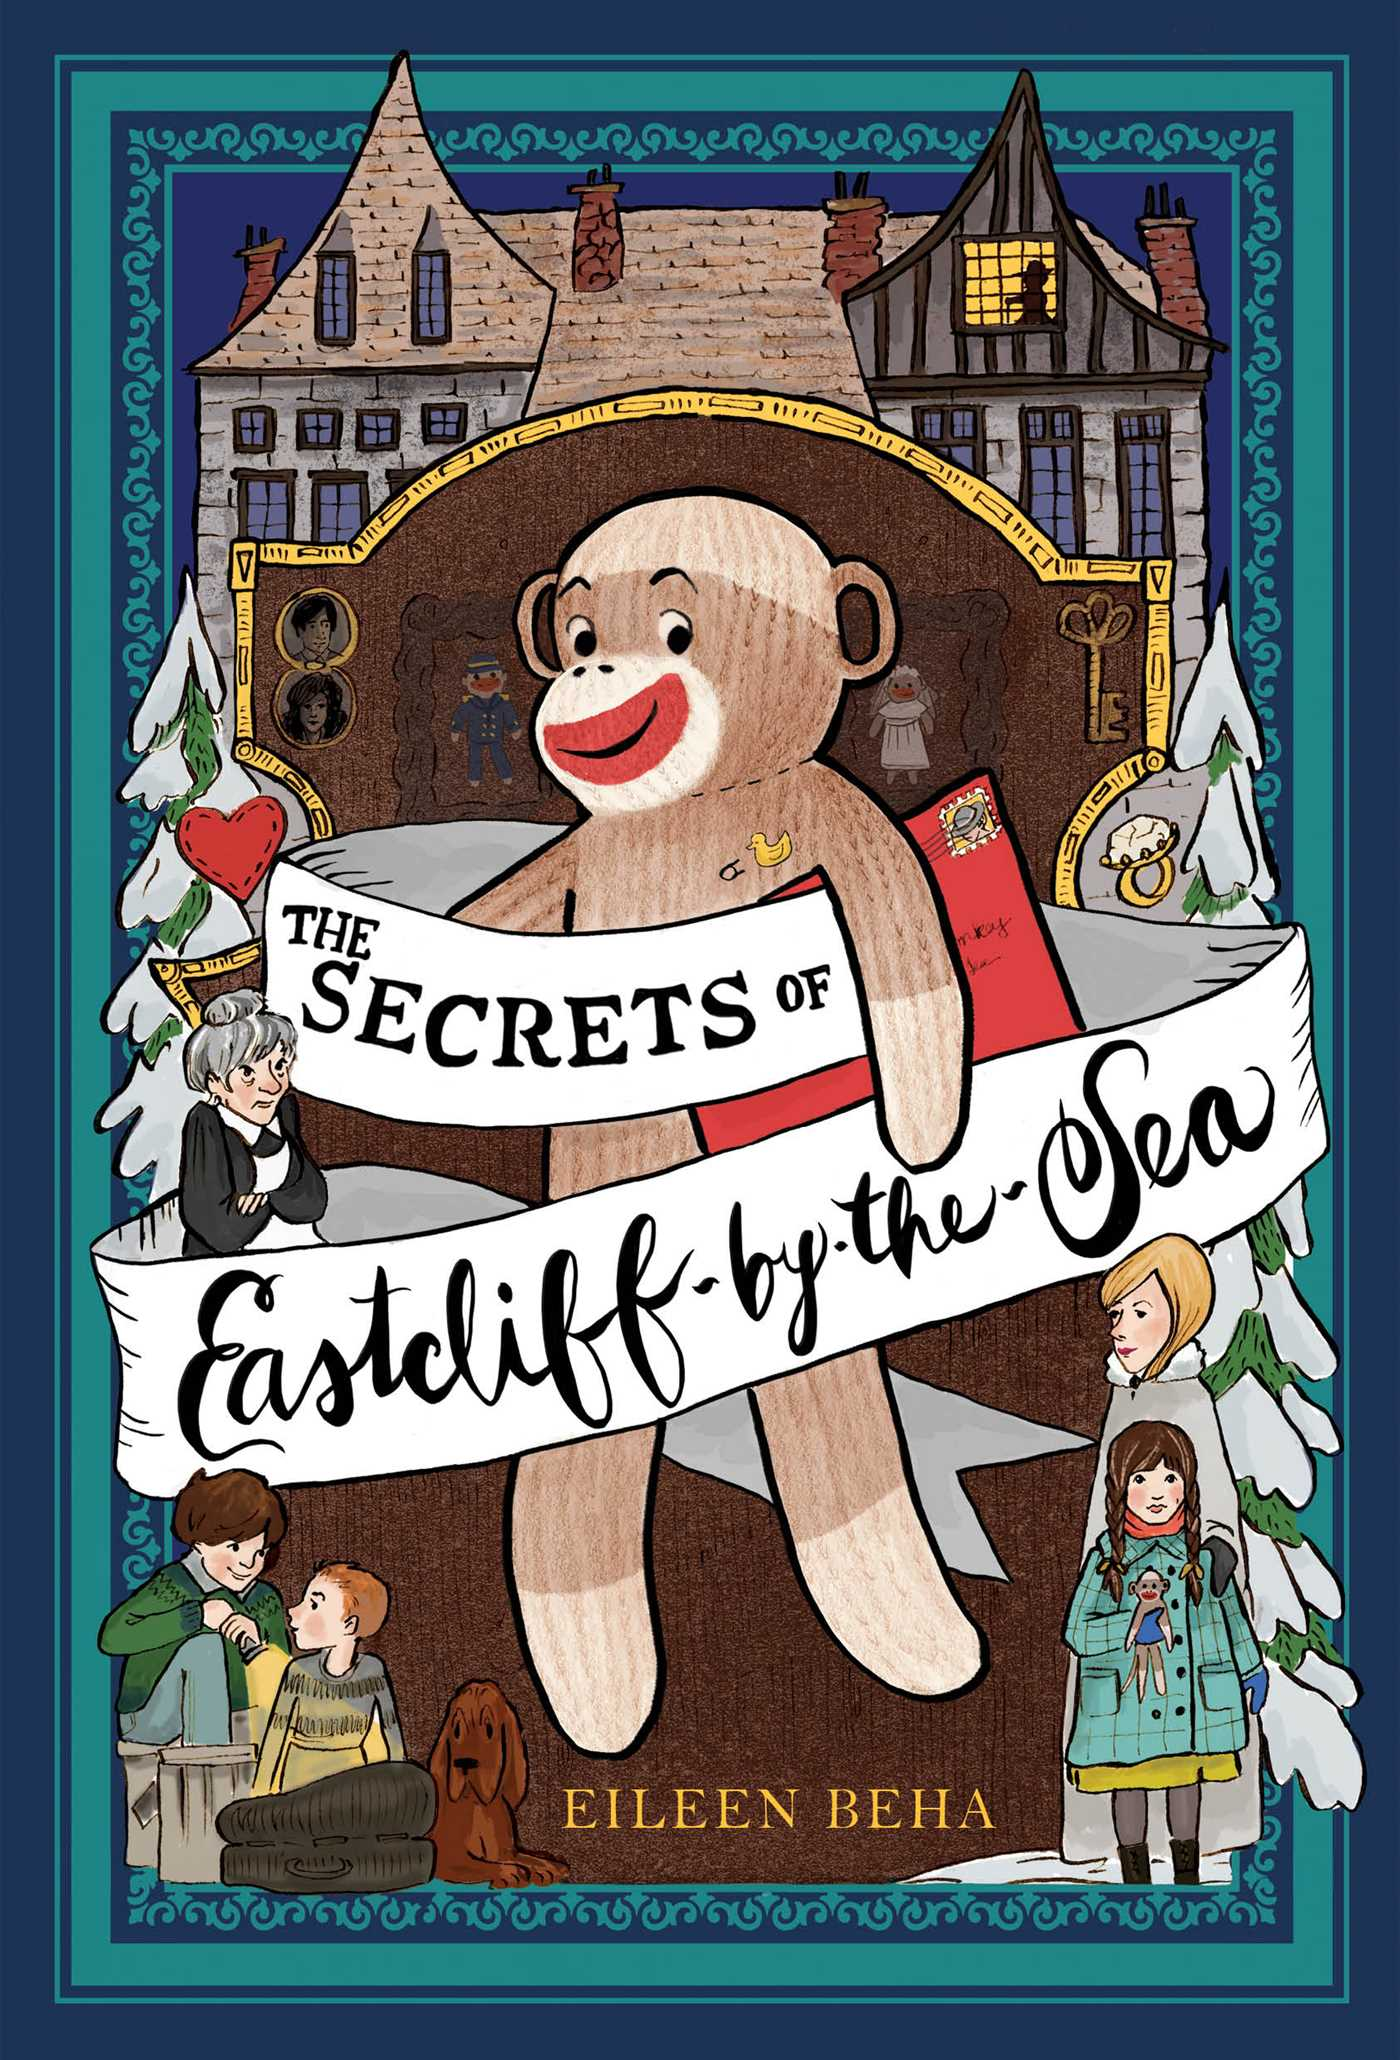 the-secrets-of-eastcliff-by-the-sea-9781442498419_hr.jpg